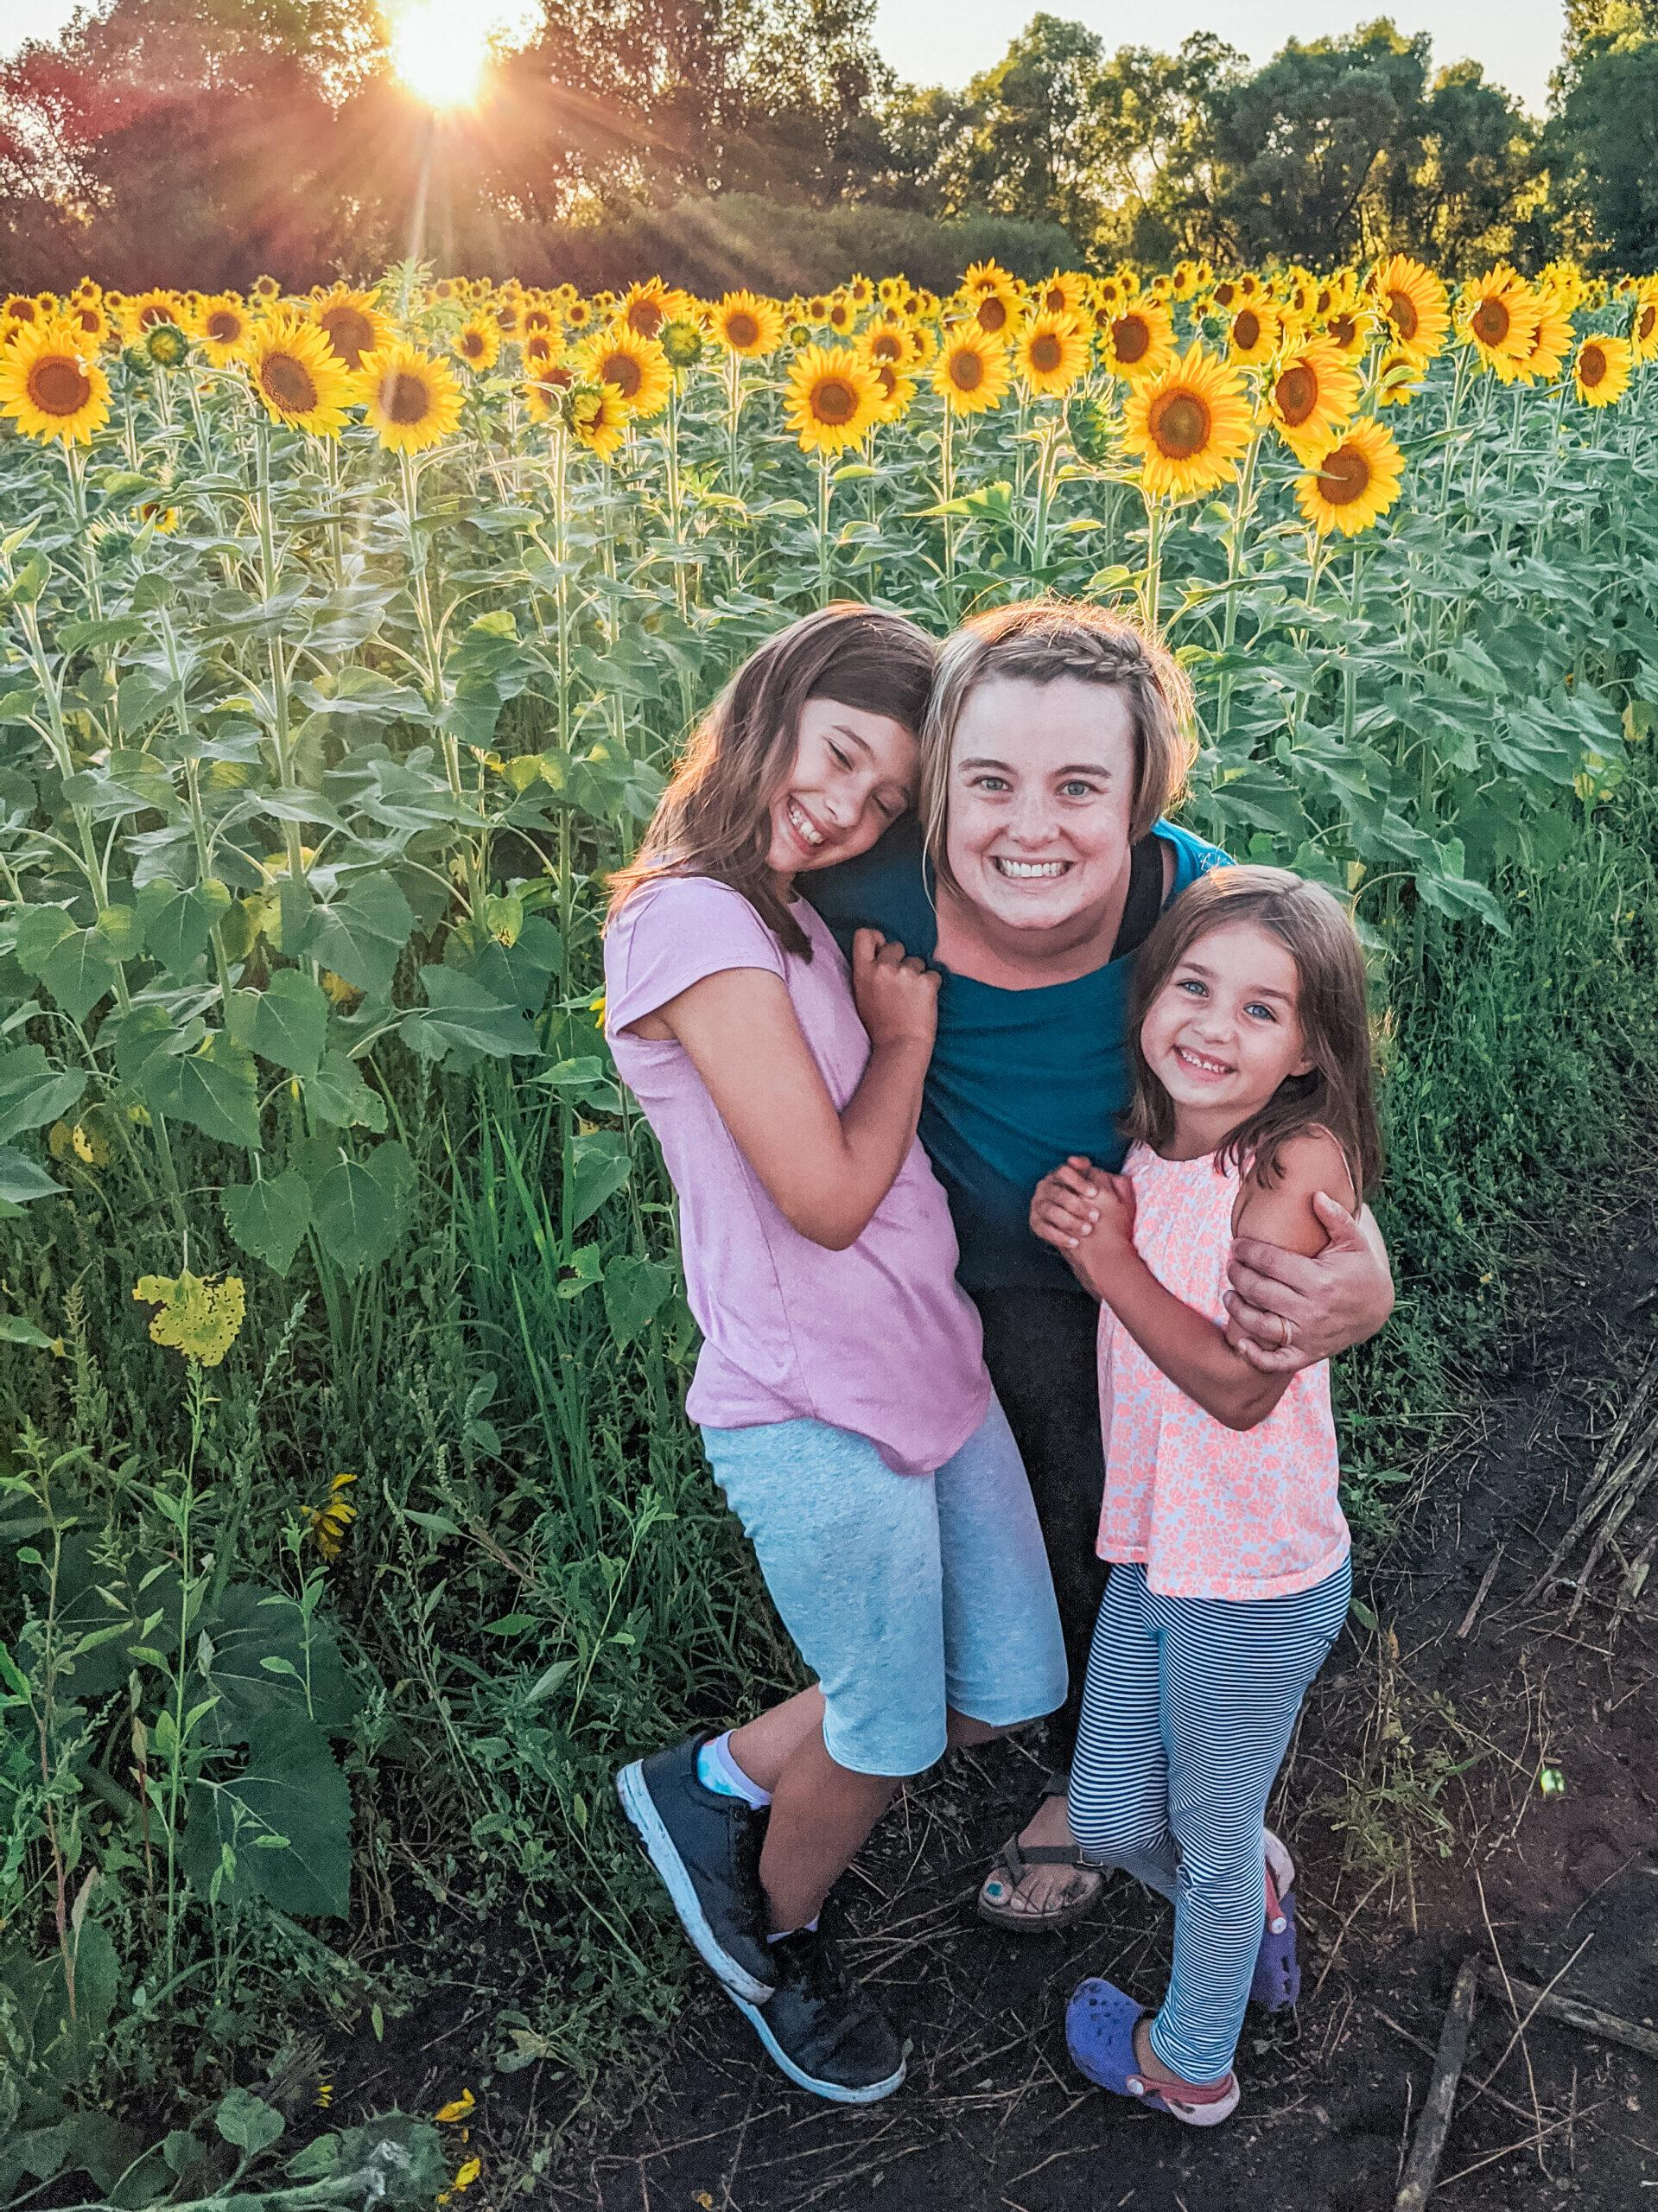 Letting your child struggle - girls in field of sunflowers